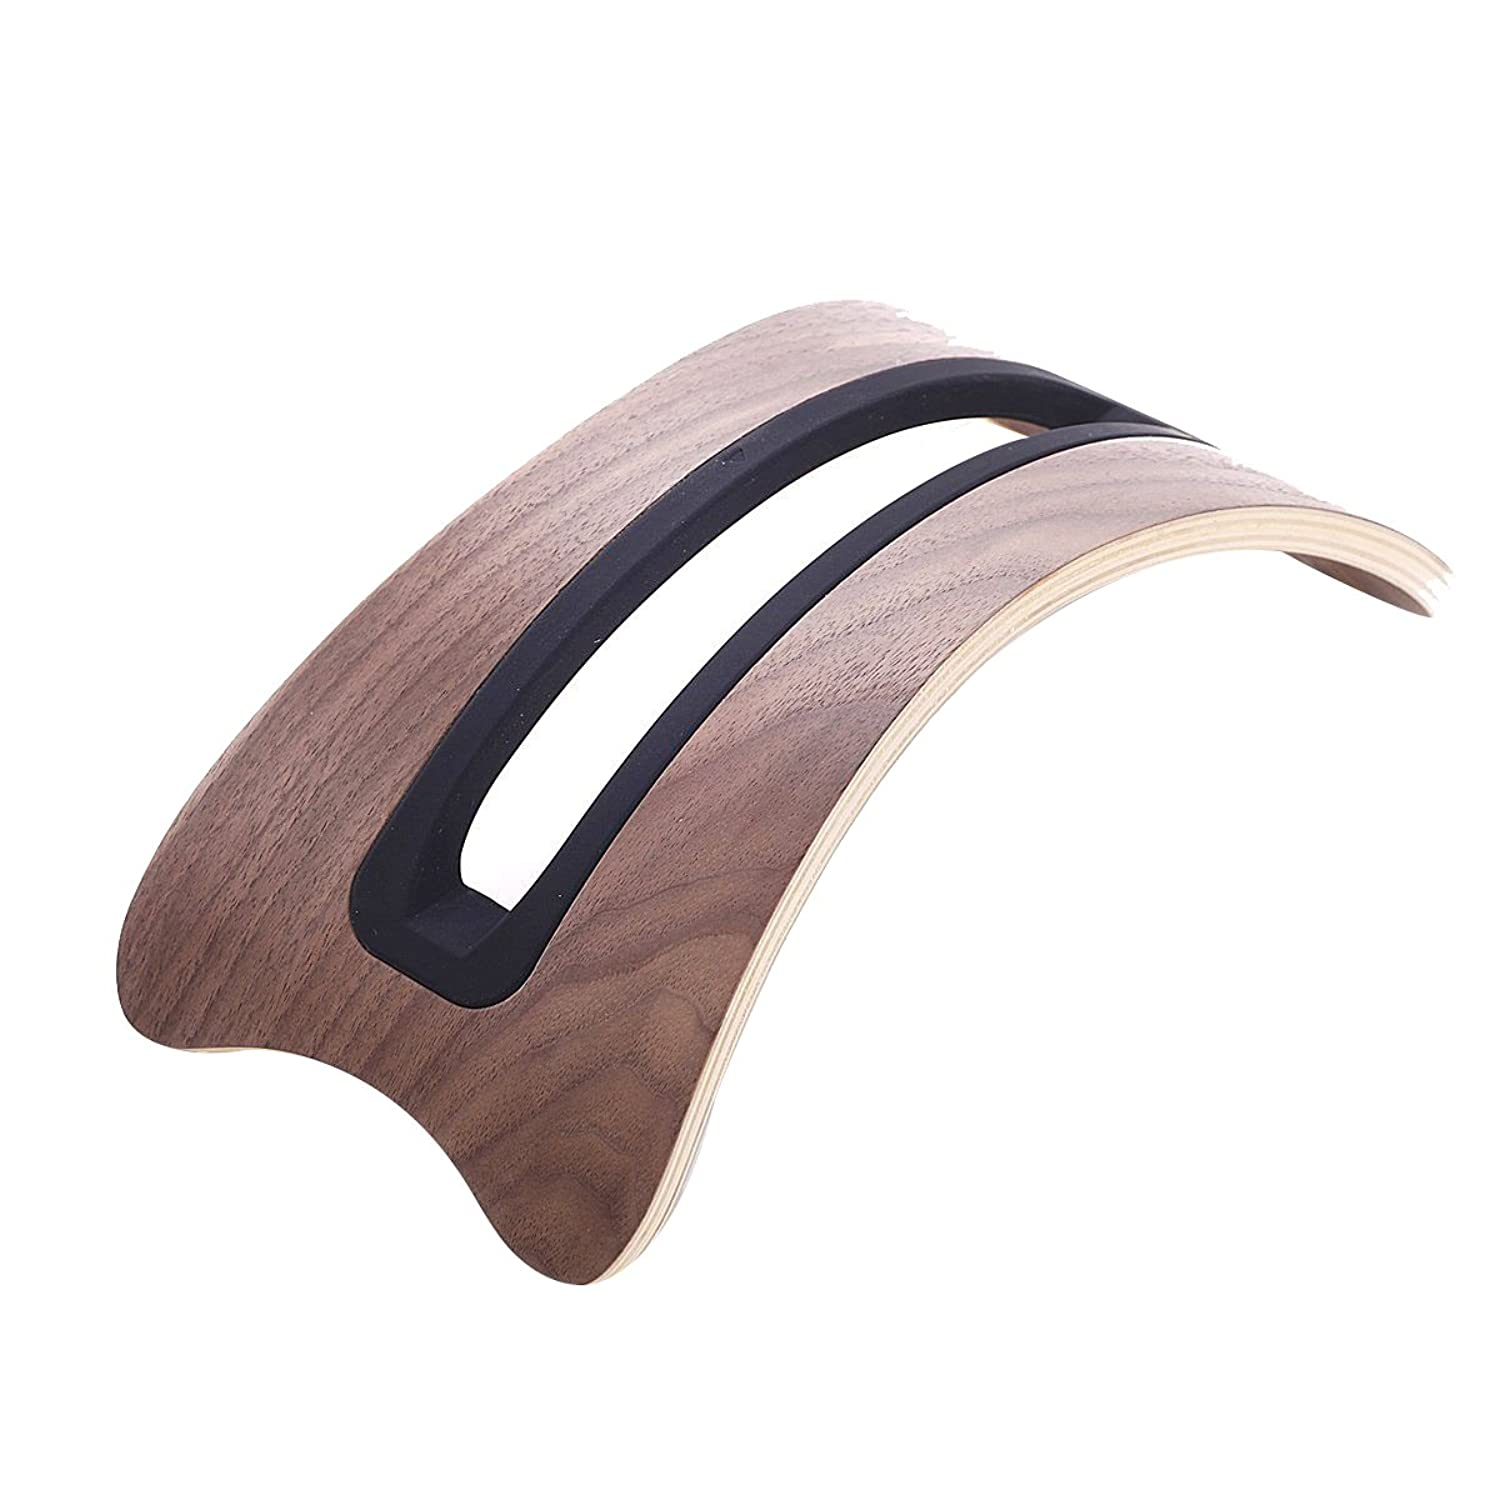 Arc Shaped Walnut Wood Laptop Stand Dock Holder For Apple Laptop Mac Book Air Pro by Ytq